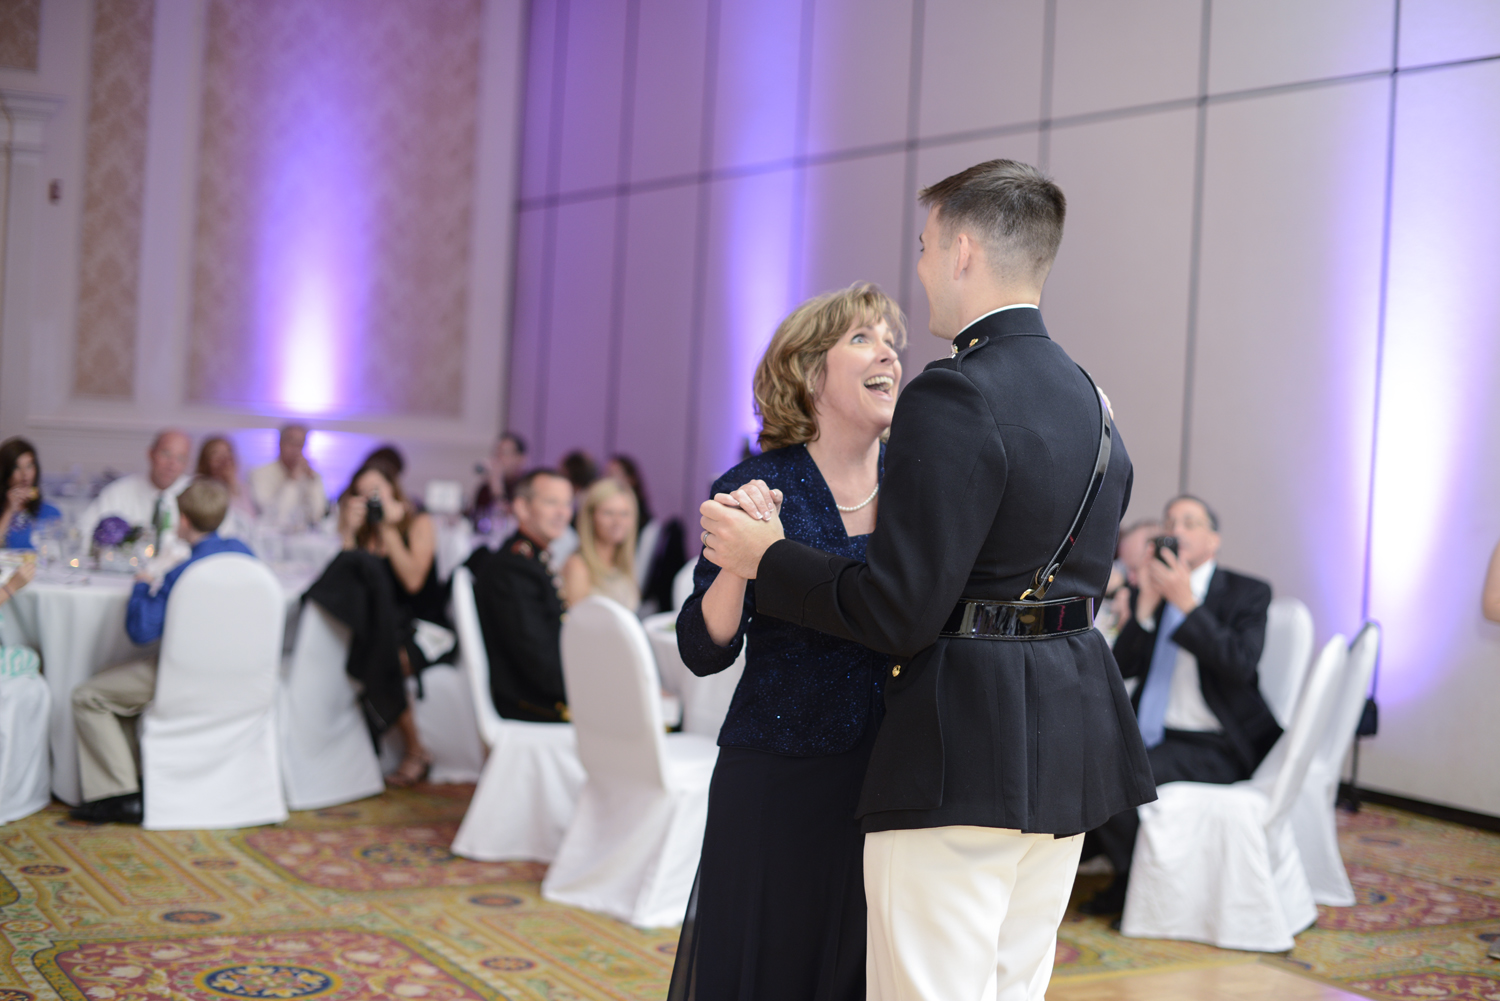 Mother/son wedding dance | Maria Grace Photography